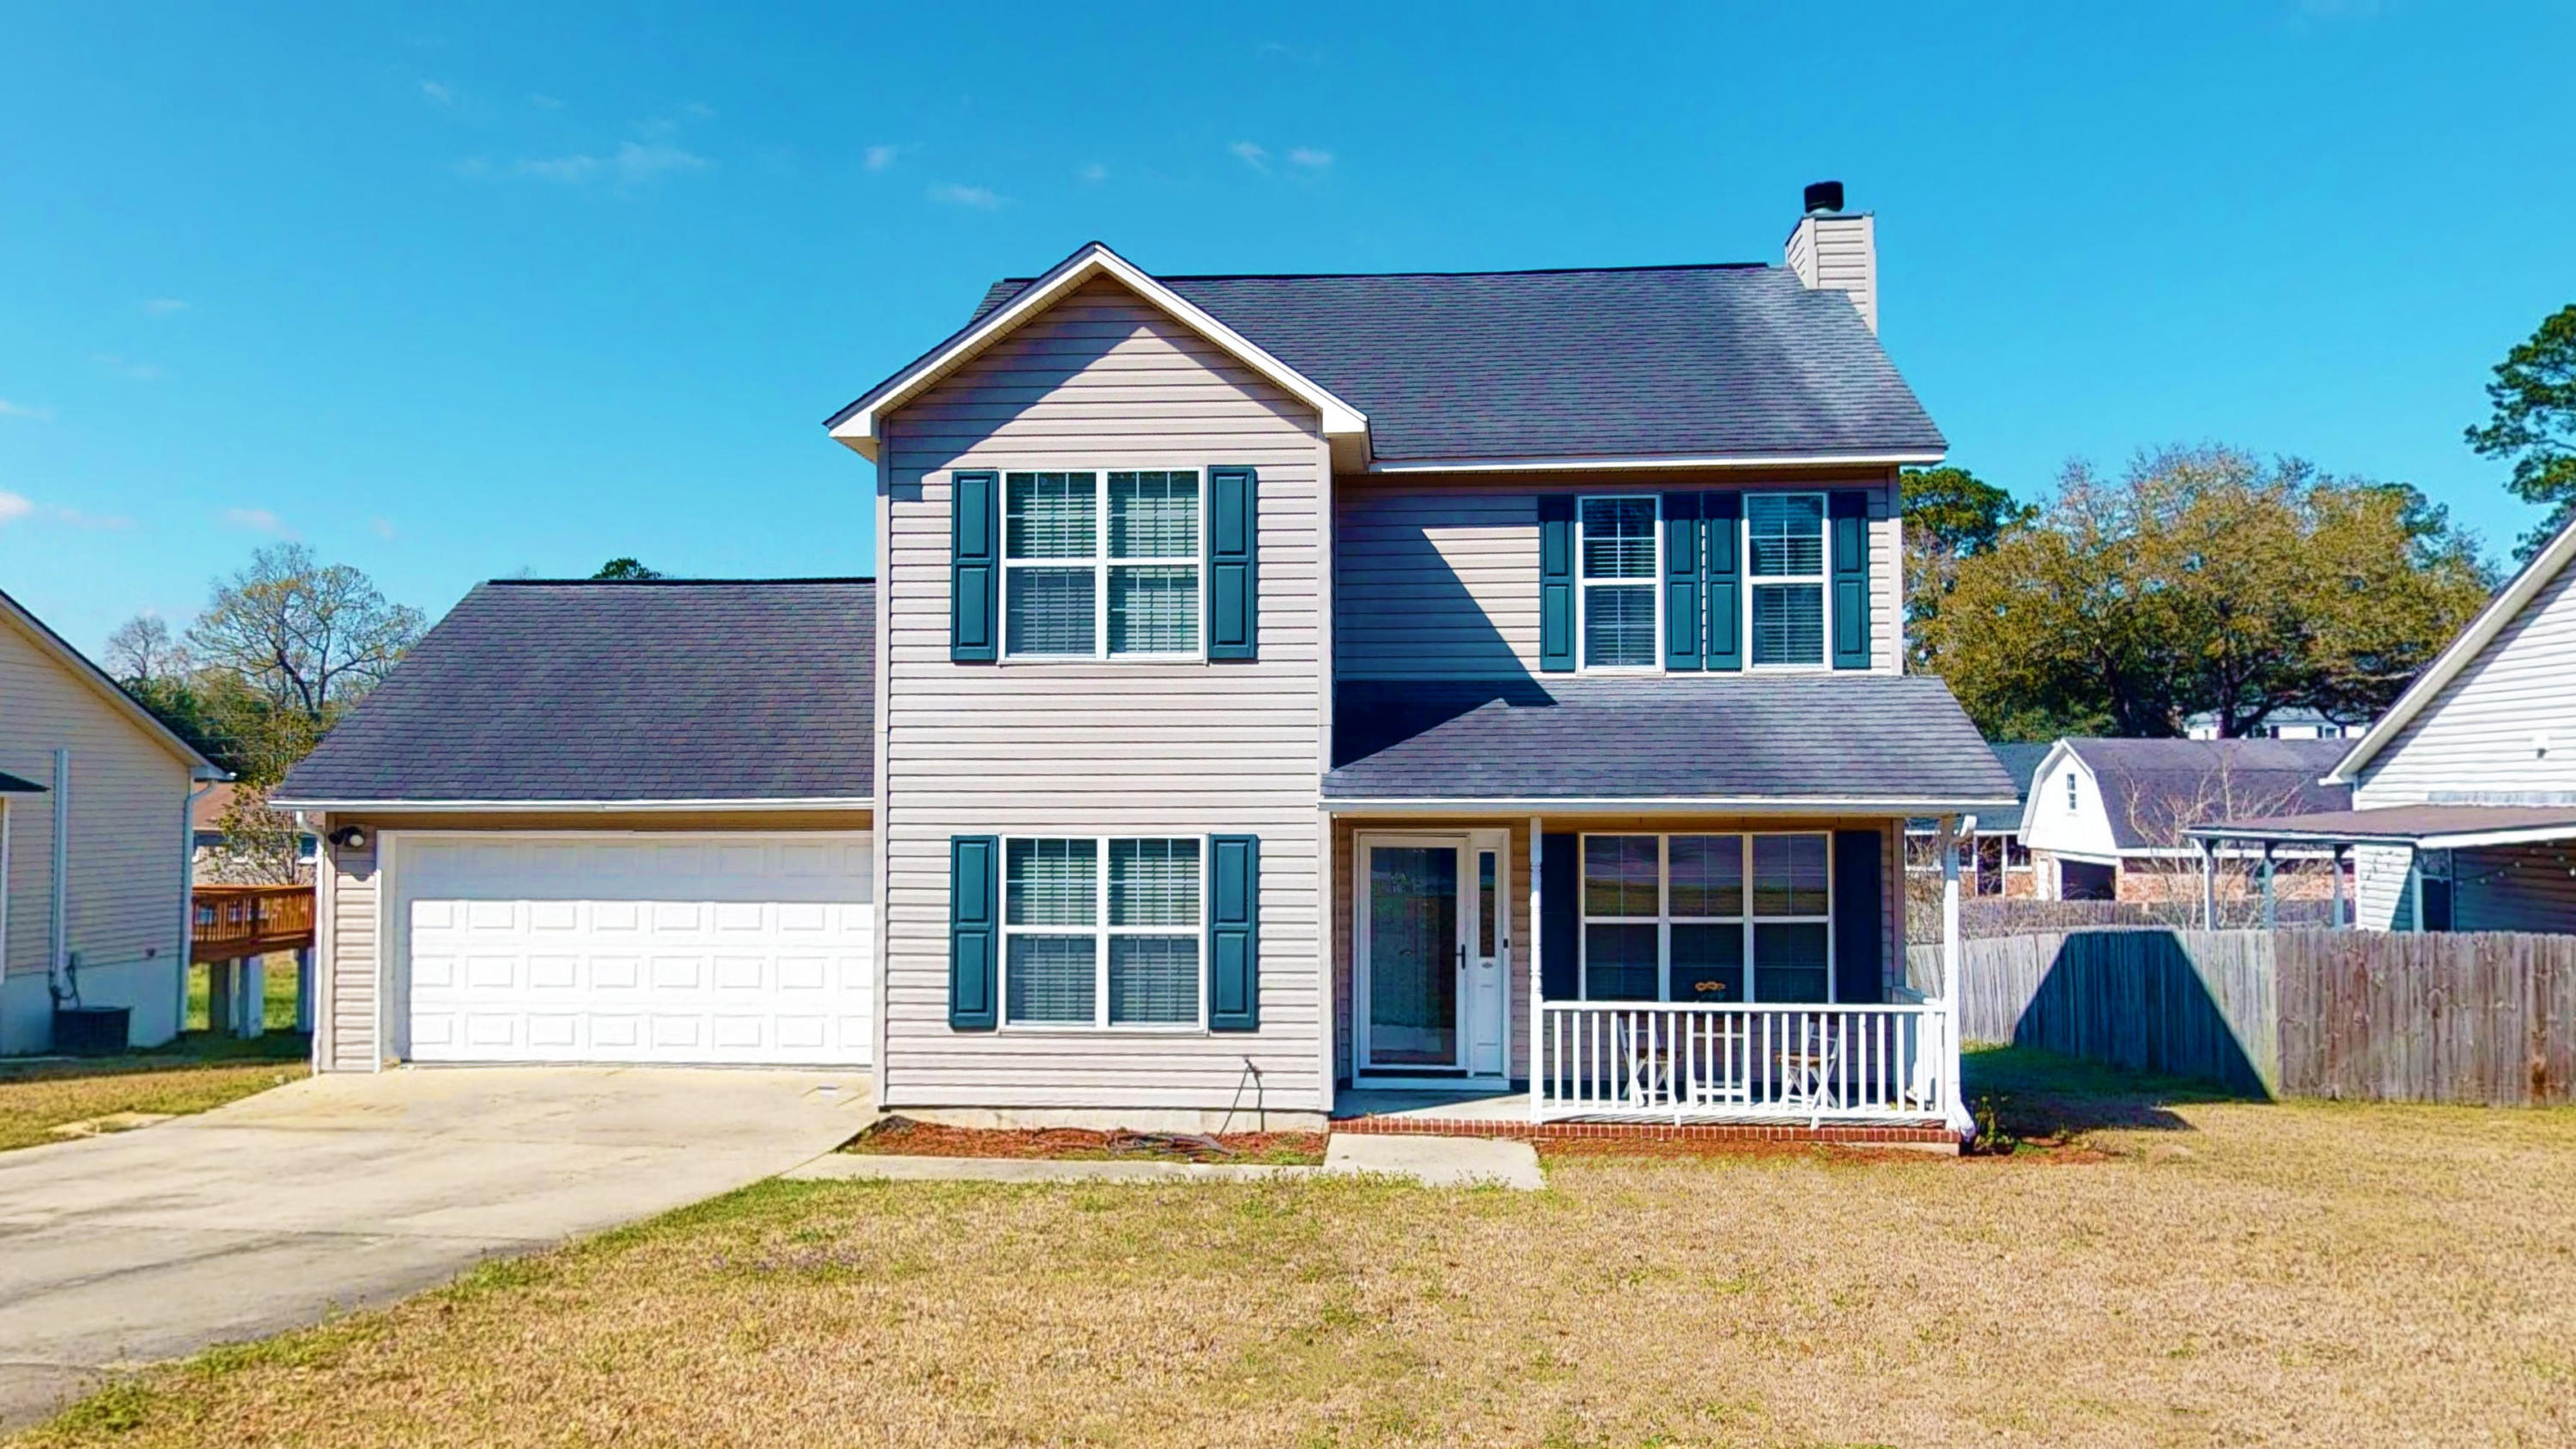 Camelot Village Homes For Sale - 113 Round Table, Goose Creek, SC - 5